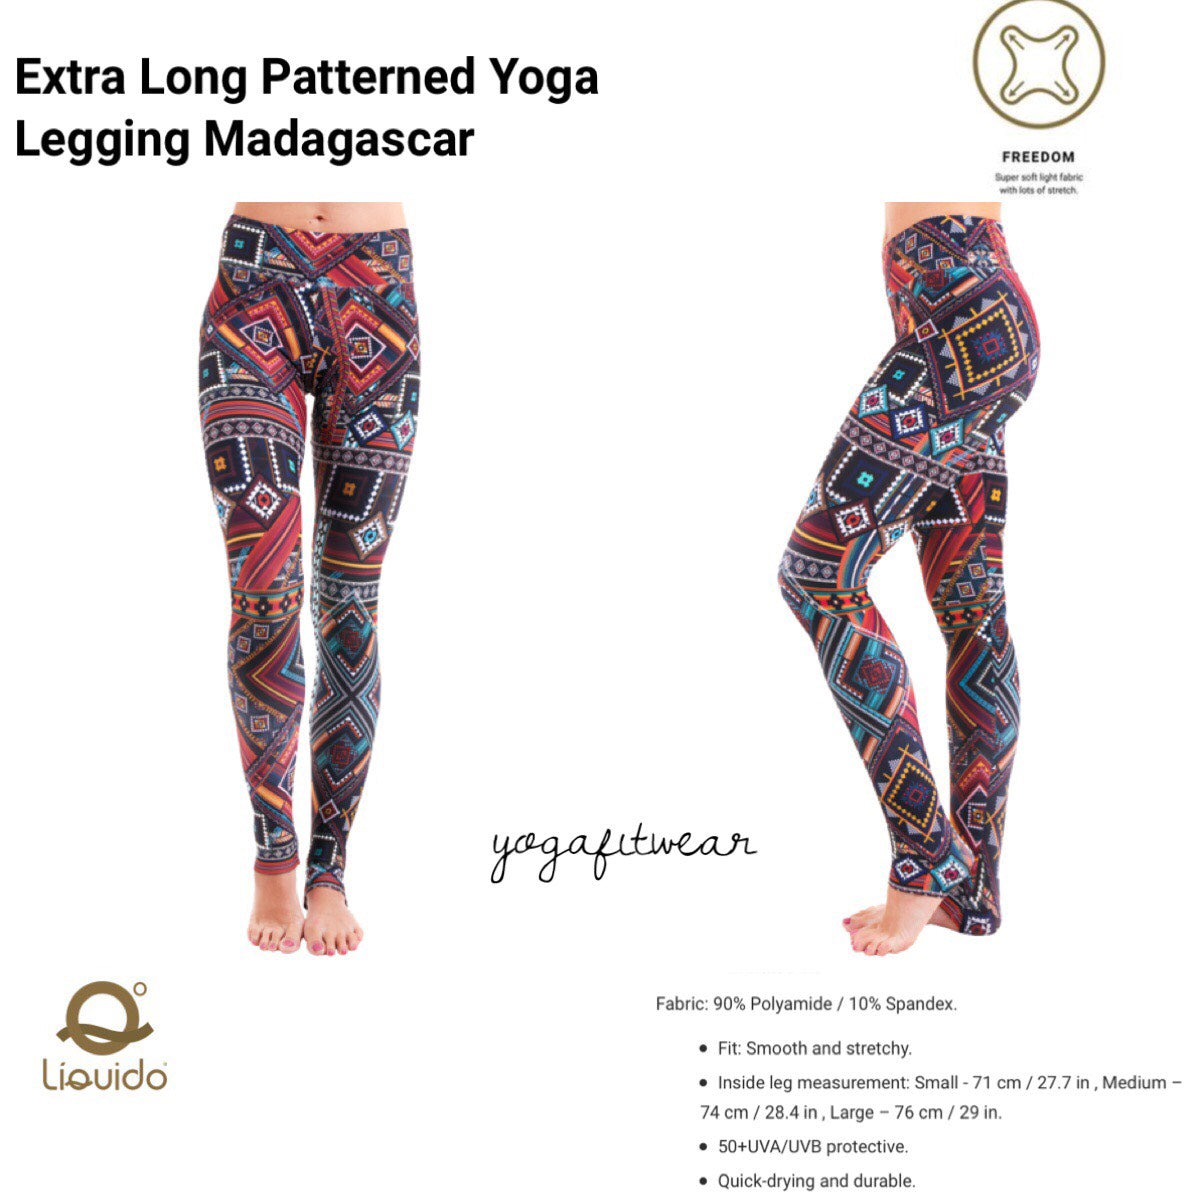 Liquido - Extra Long Patterned Yoga Legging Madagascar (LQ00494)